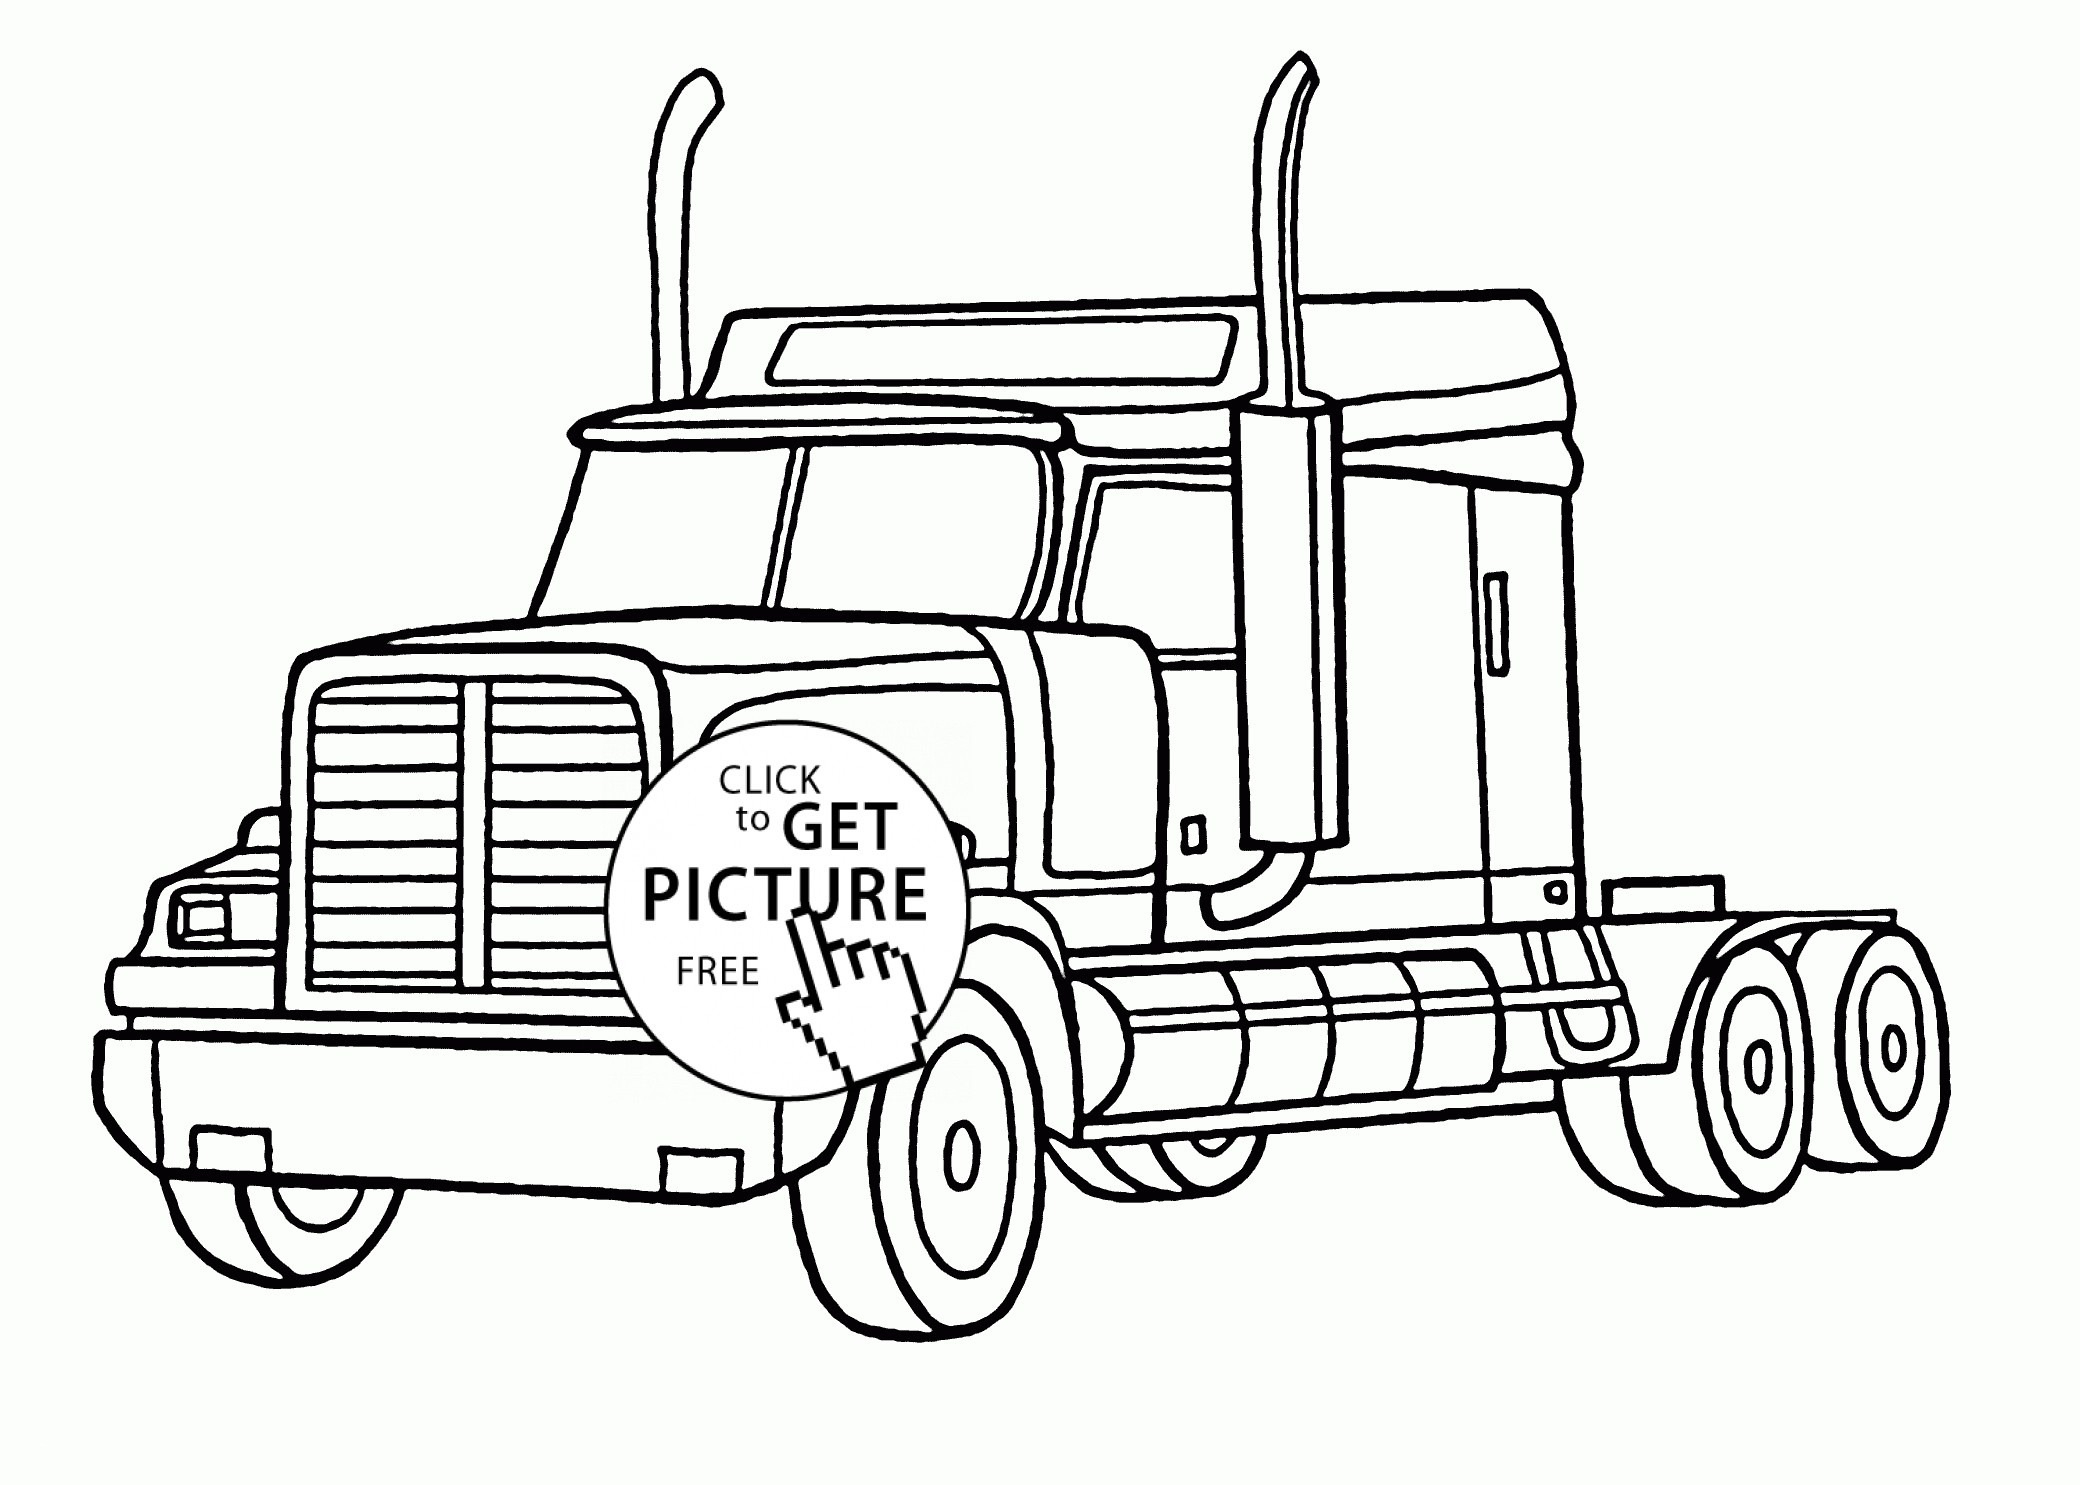 ford truck coloring pages Collection-Ford F250 Coloring Pages News ford Truck Coloring Pages Best ford F150 Coloring Page 18-a